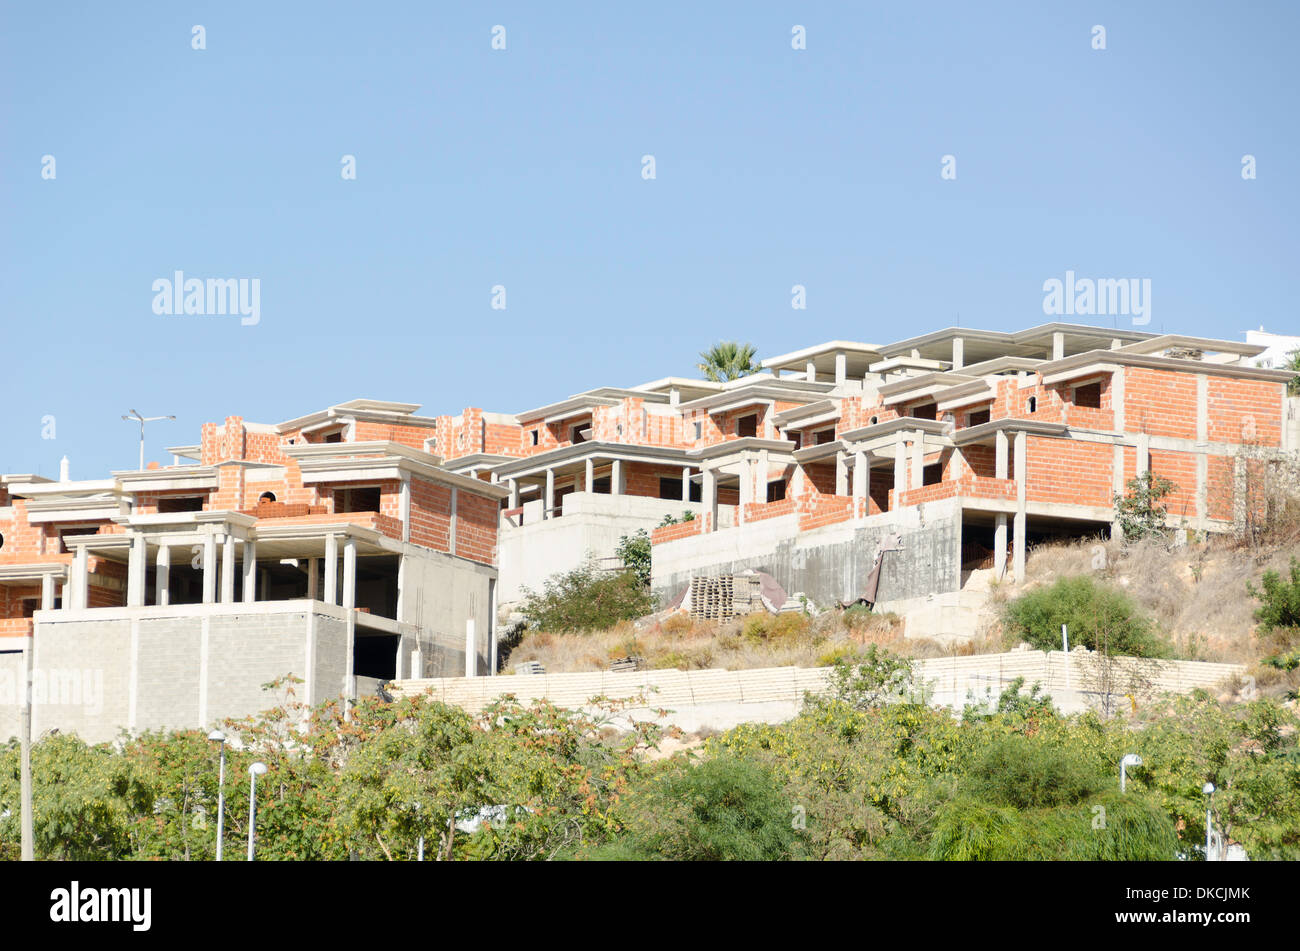 Unfinished buildings in Albufeira Portugal built with brick stones - Stock Image